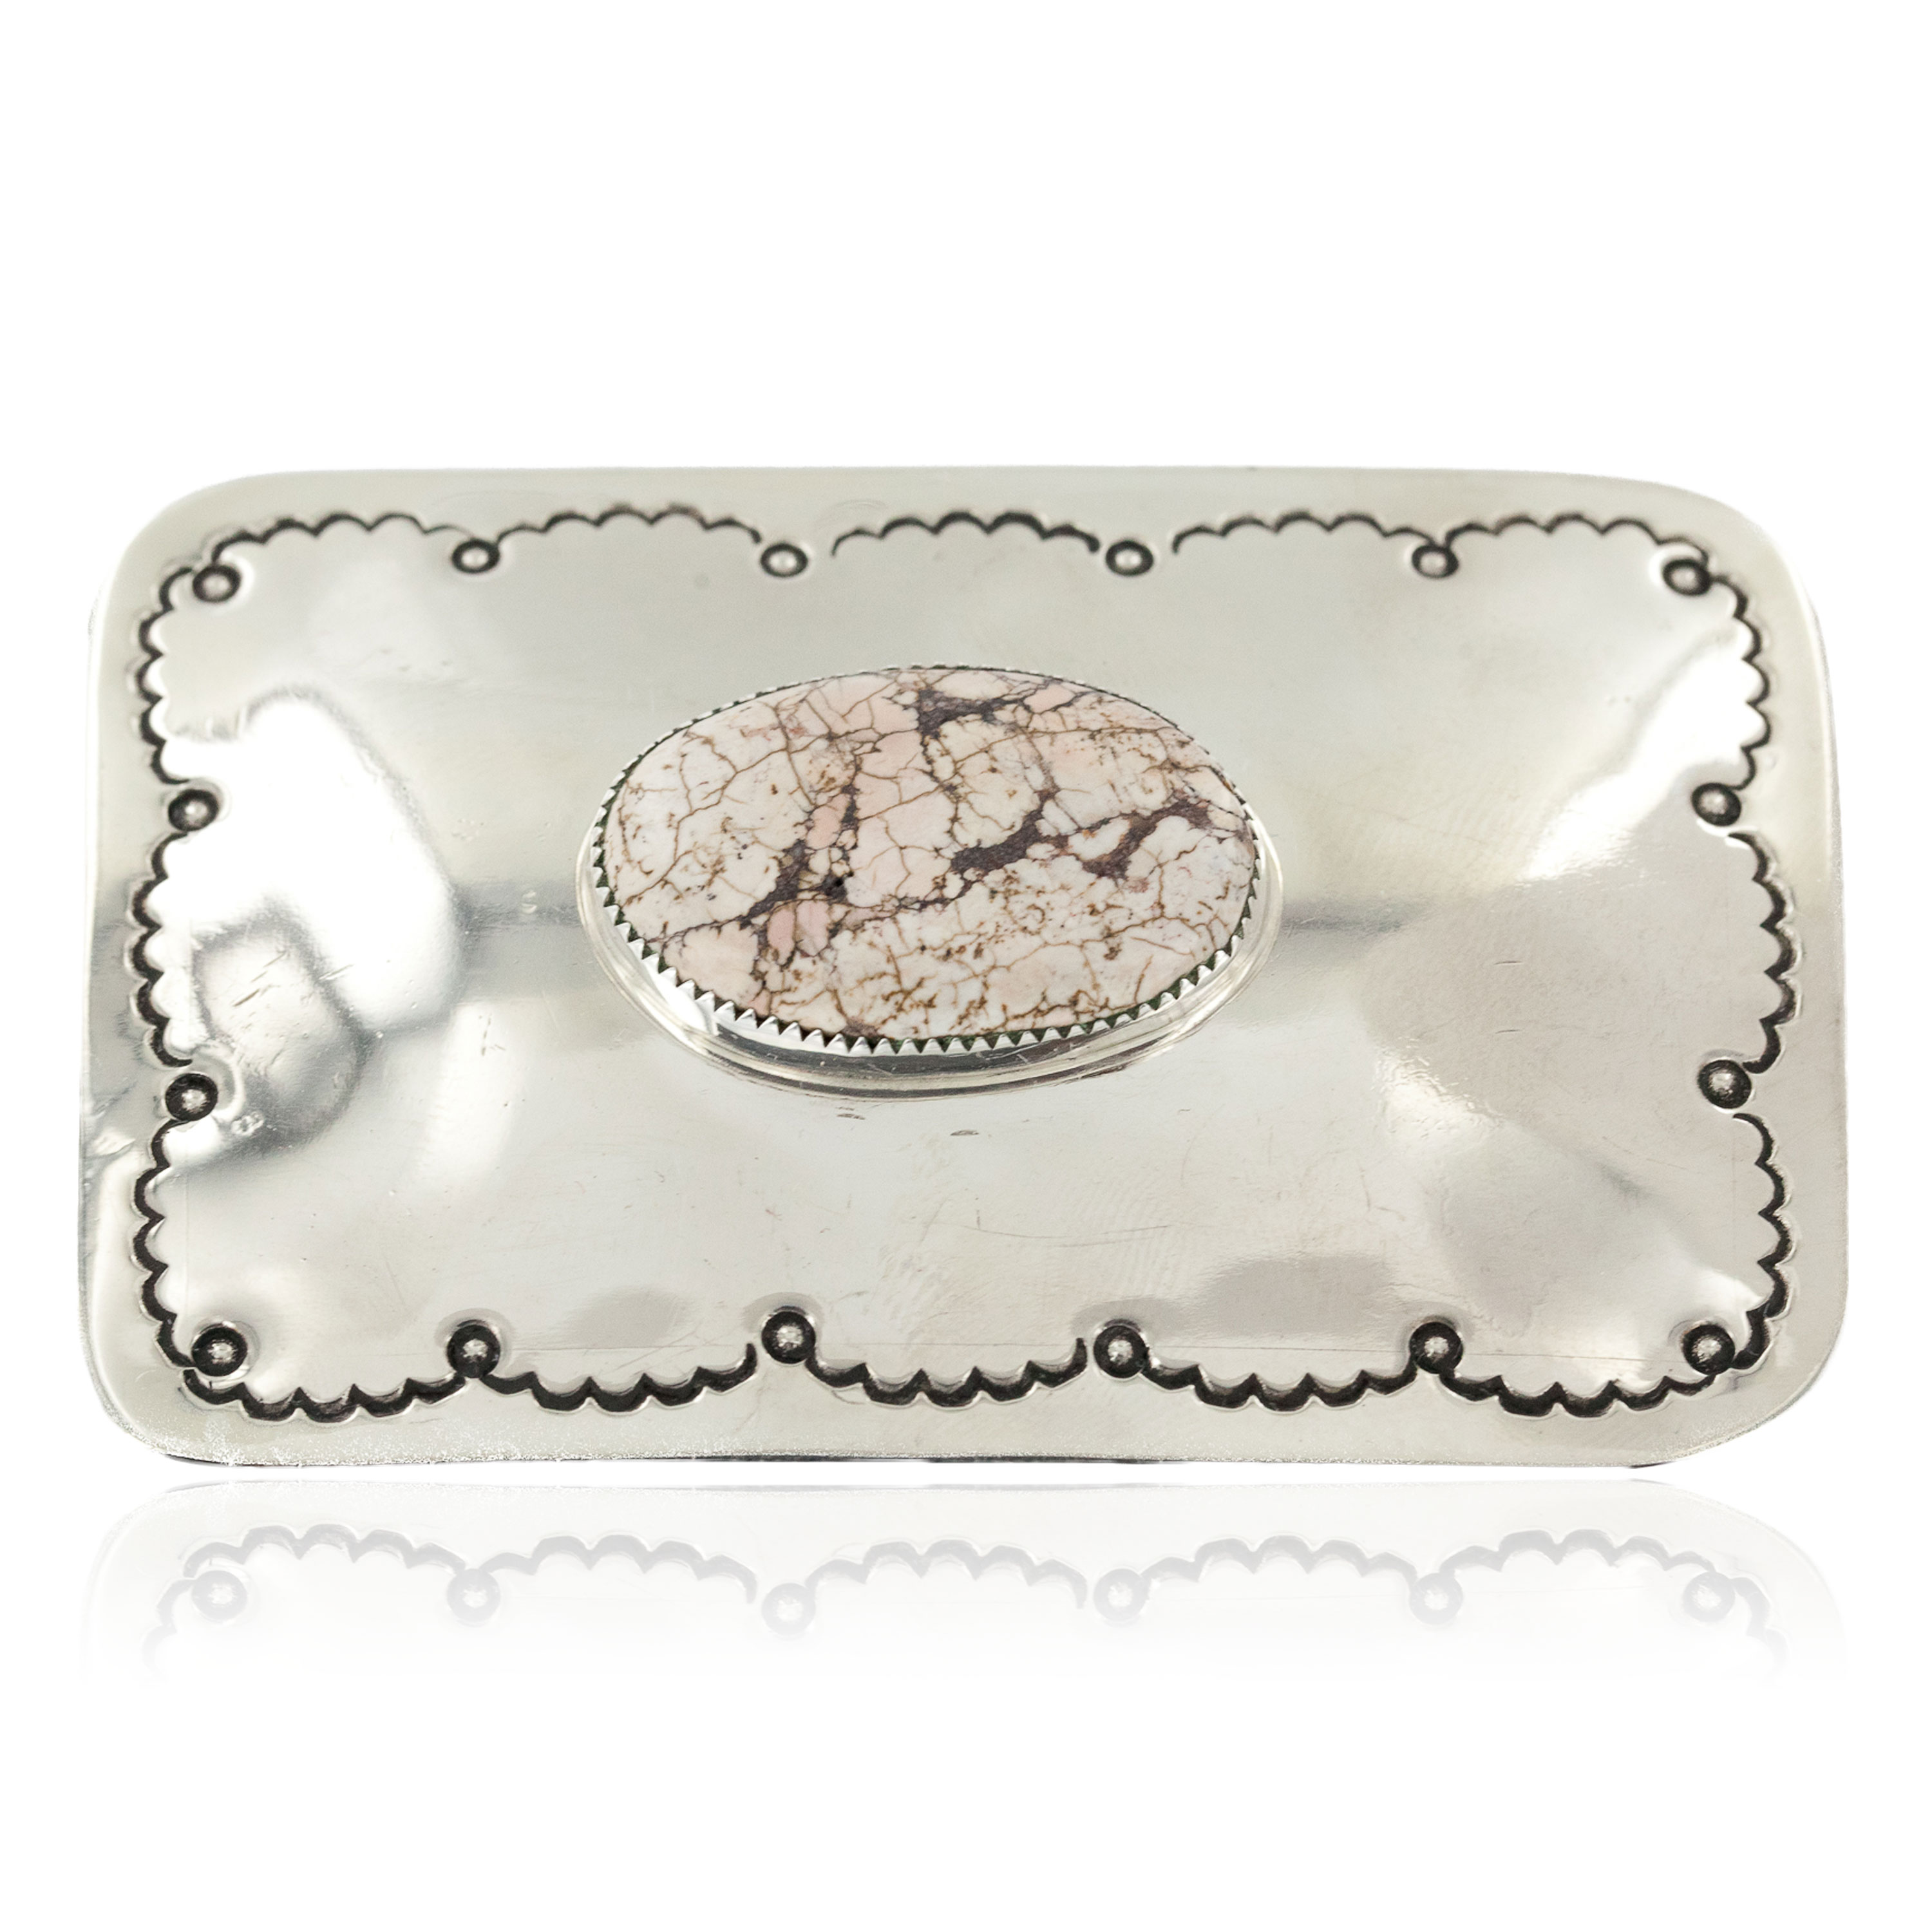 Certified Authentic Handmade Navajo Nickel White Howlite Native American Buckle 1208-1 All Products NB151215040234 1208-1 (by LomaSiiva)